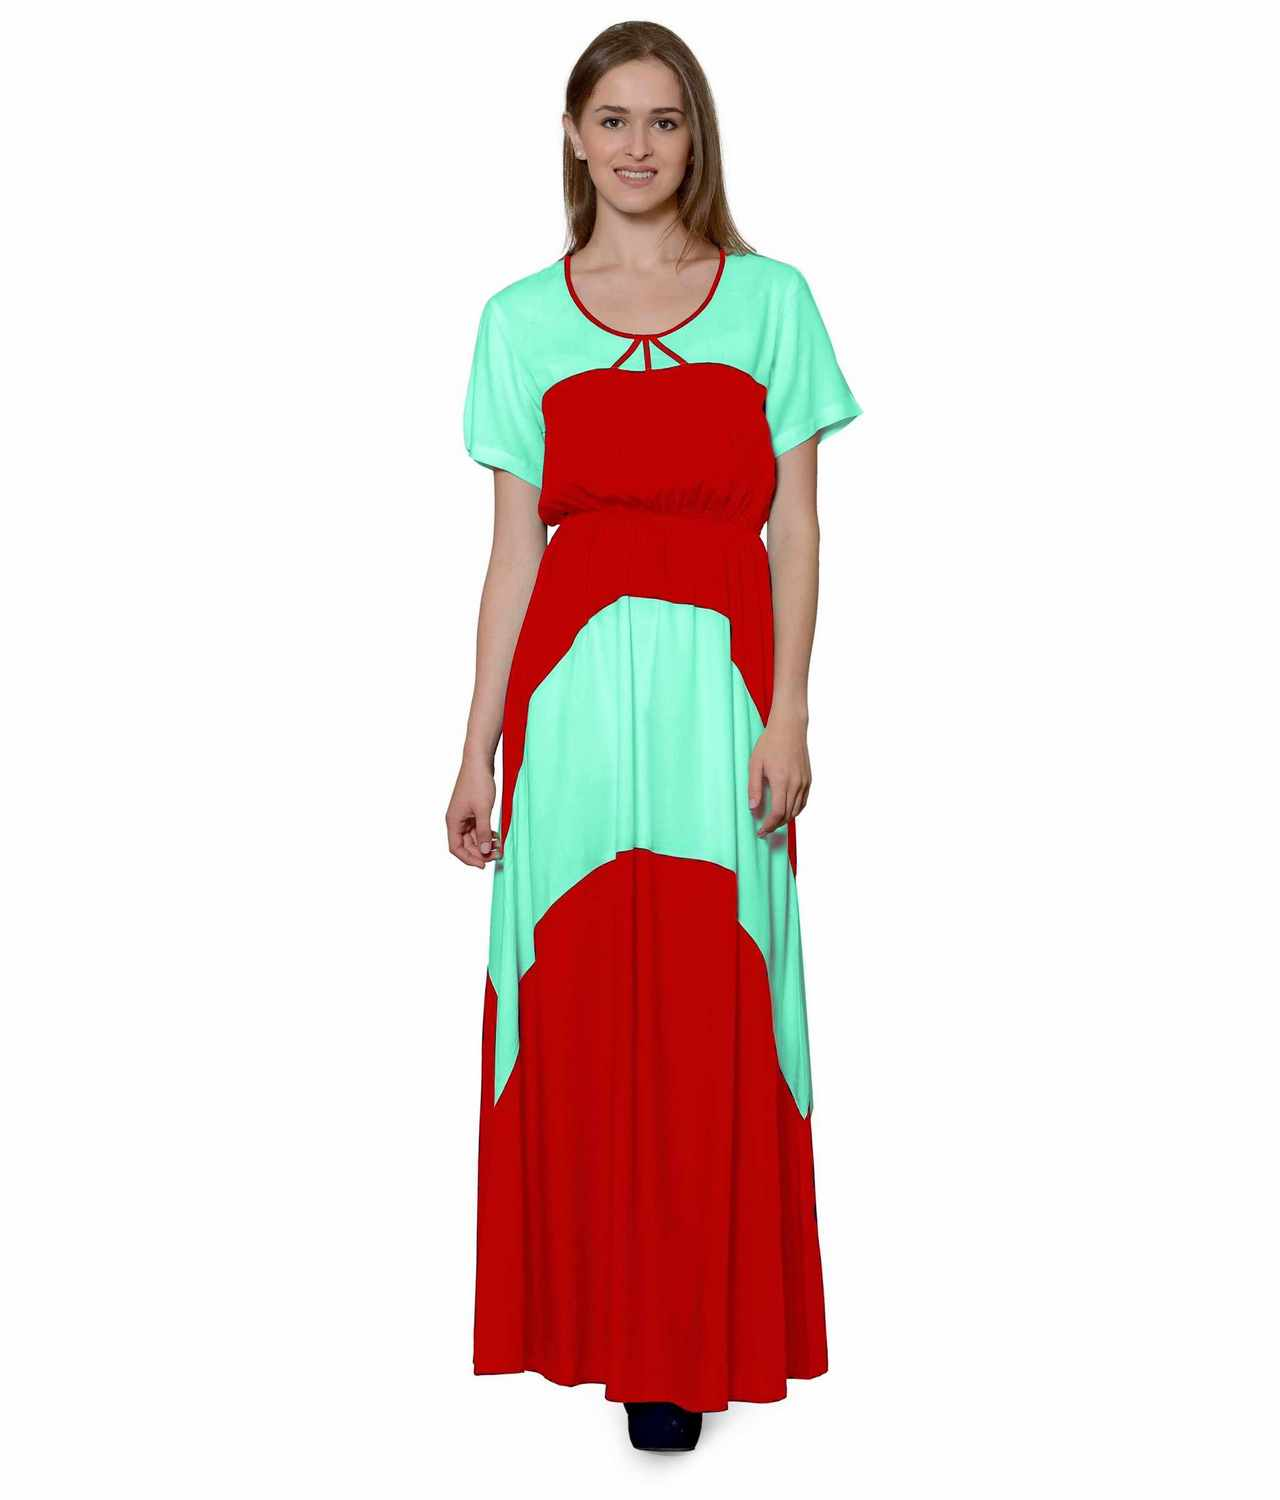 Color Block Slim Fit Maxi Dress Gown in Teal Green:Red